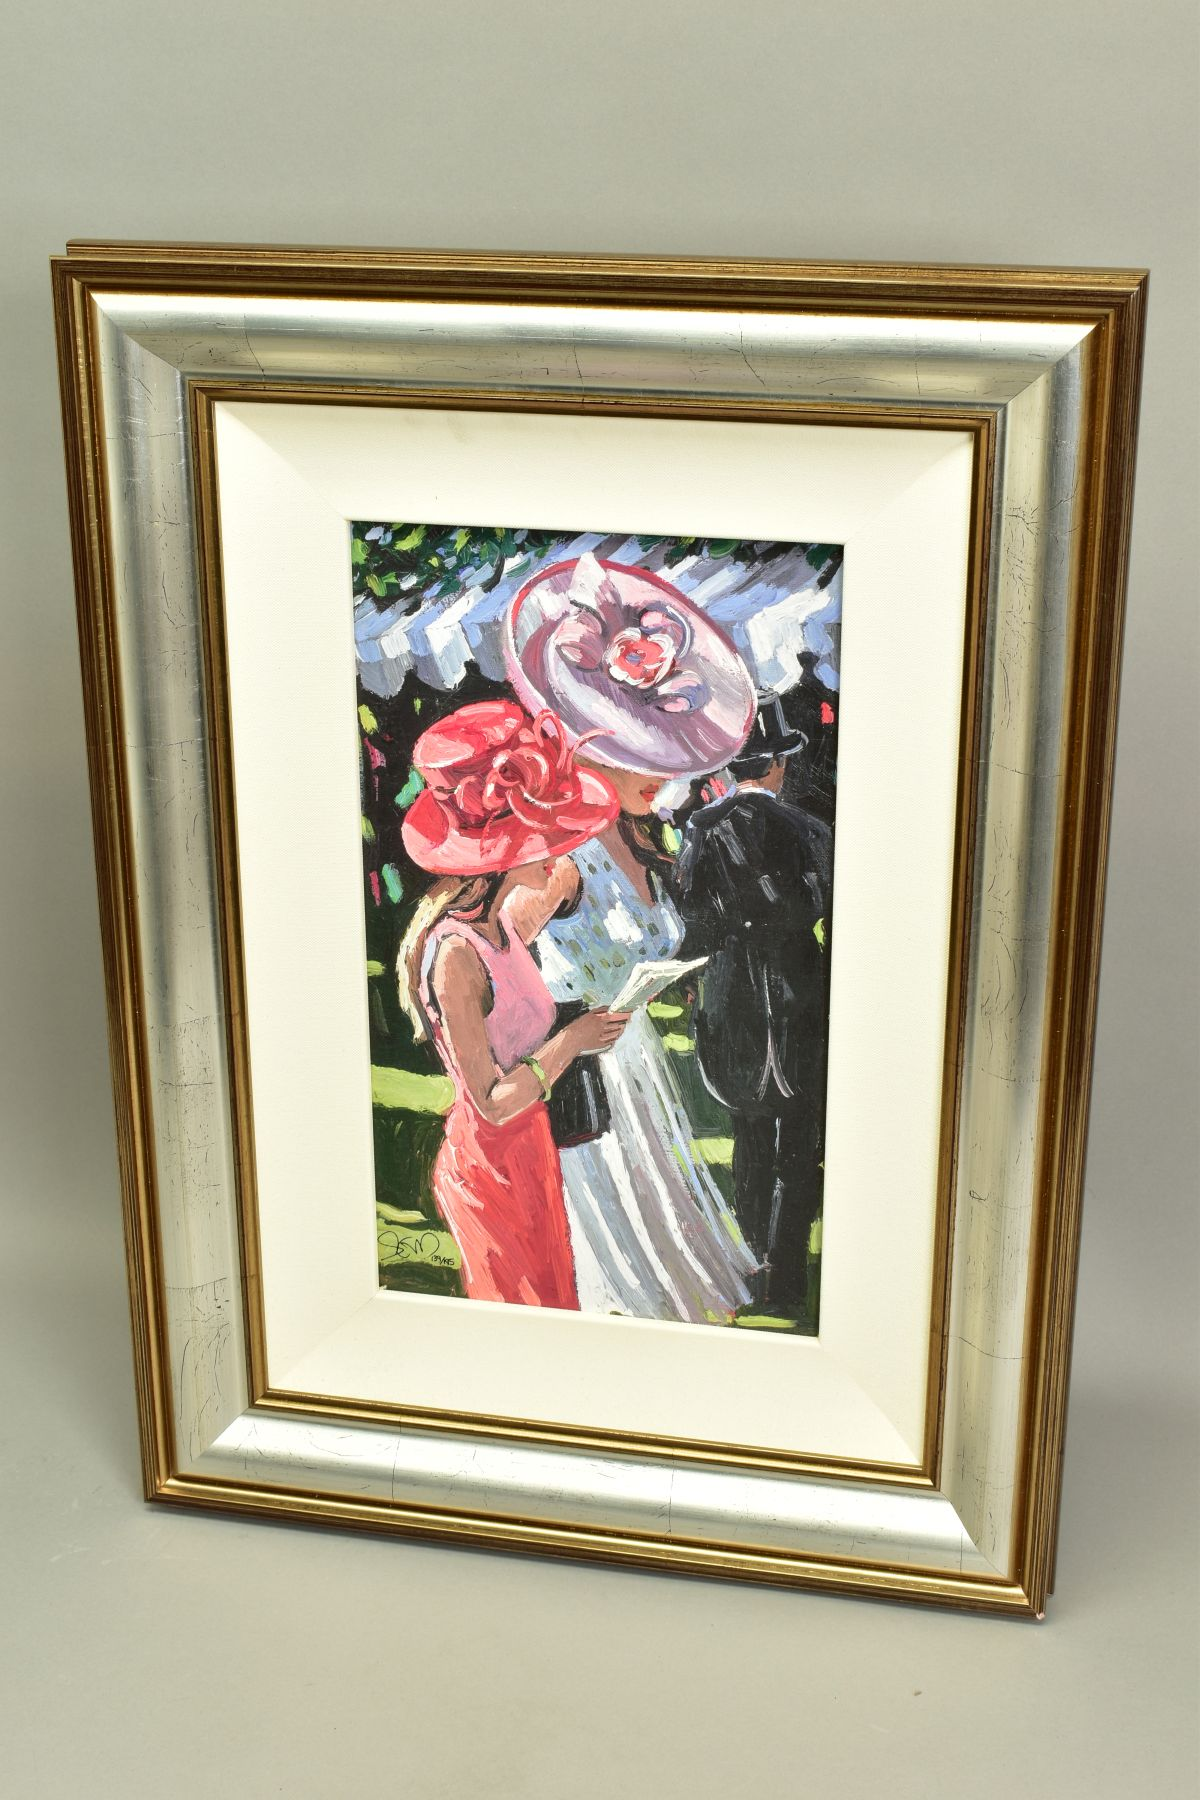 SHERREE VALENTINE DAINES (BRITISH 1959), 'Society Ladies', a Limited Edition print of female figures - Image 5 of 6